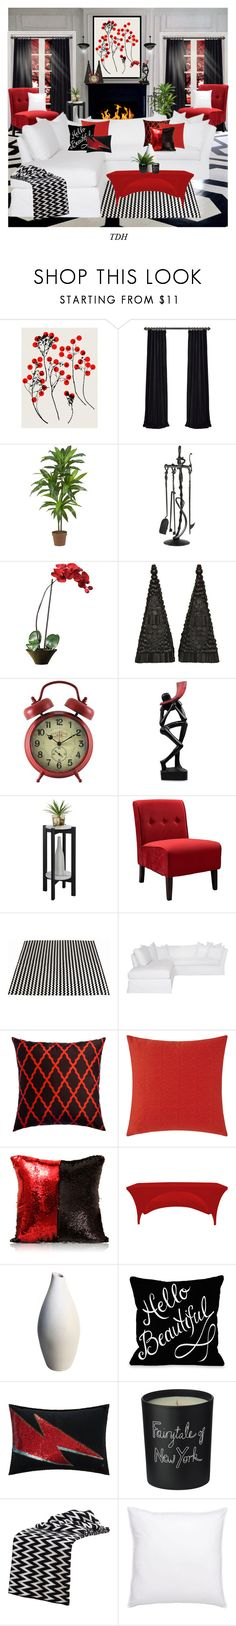 """""""Red Black & White Living Room"""" by talvadh ❤ liked on Polyvore featuring interior, interiors, interior design, home, home decor, interior decorating, Garima Dhawan, Nearly Natural, NOVICA and Convenience Concepts"""